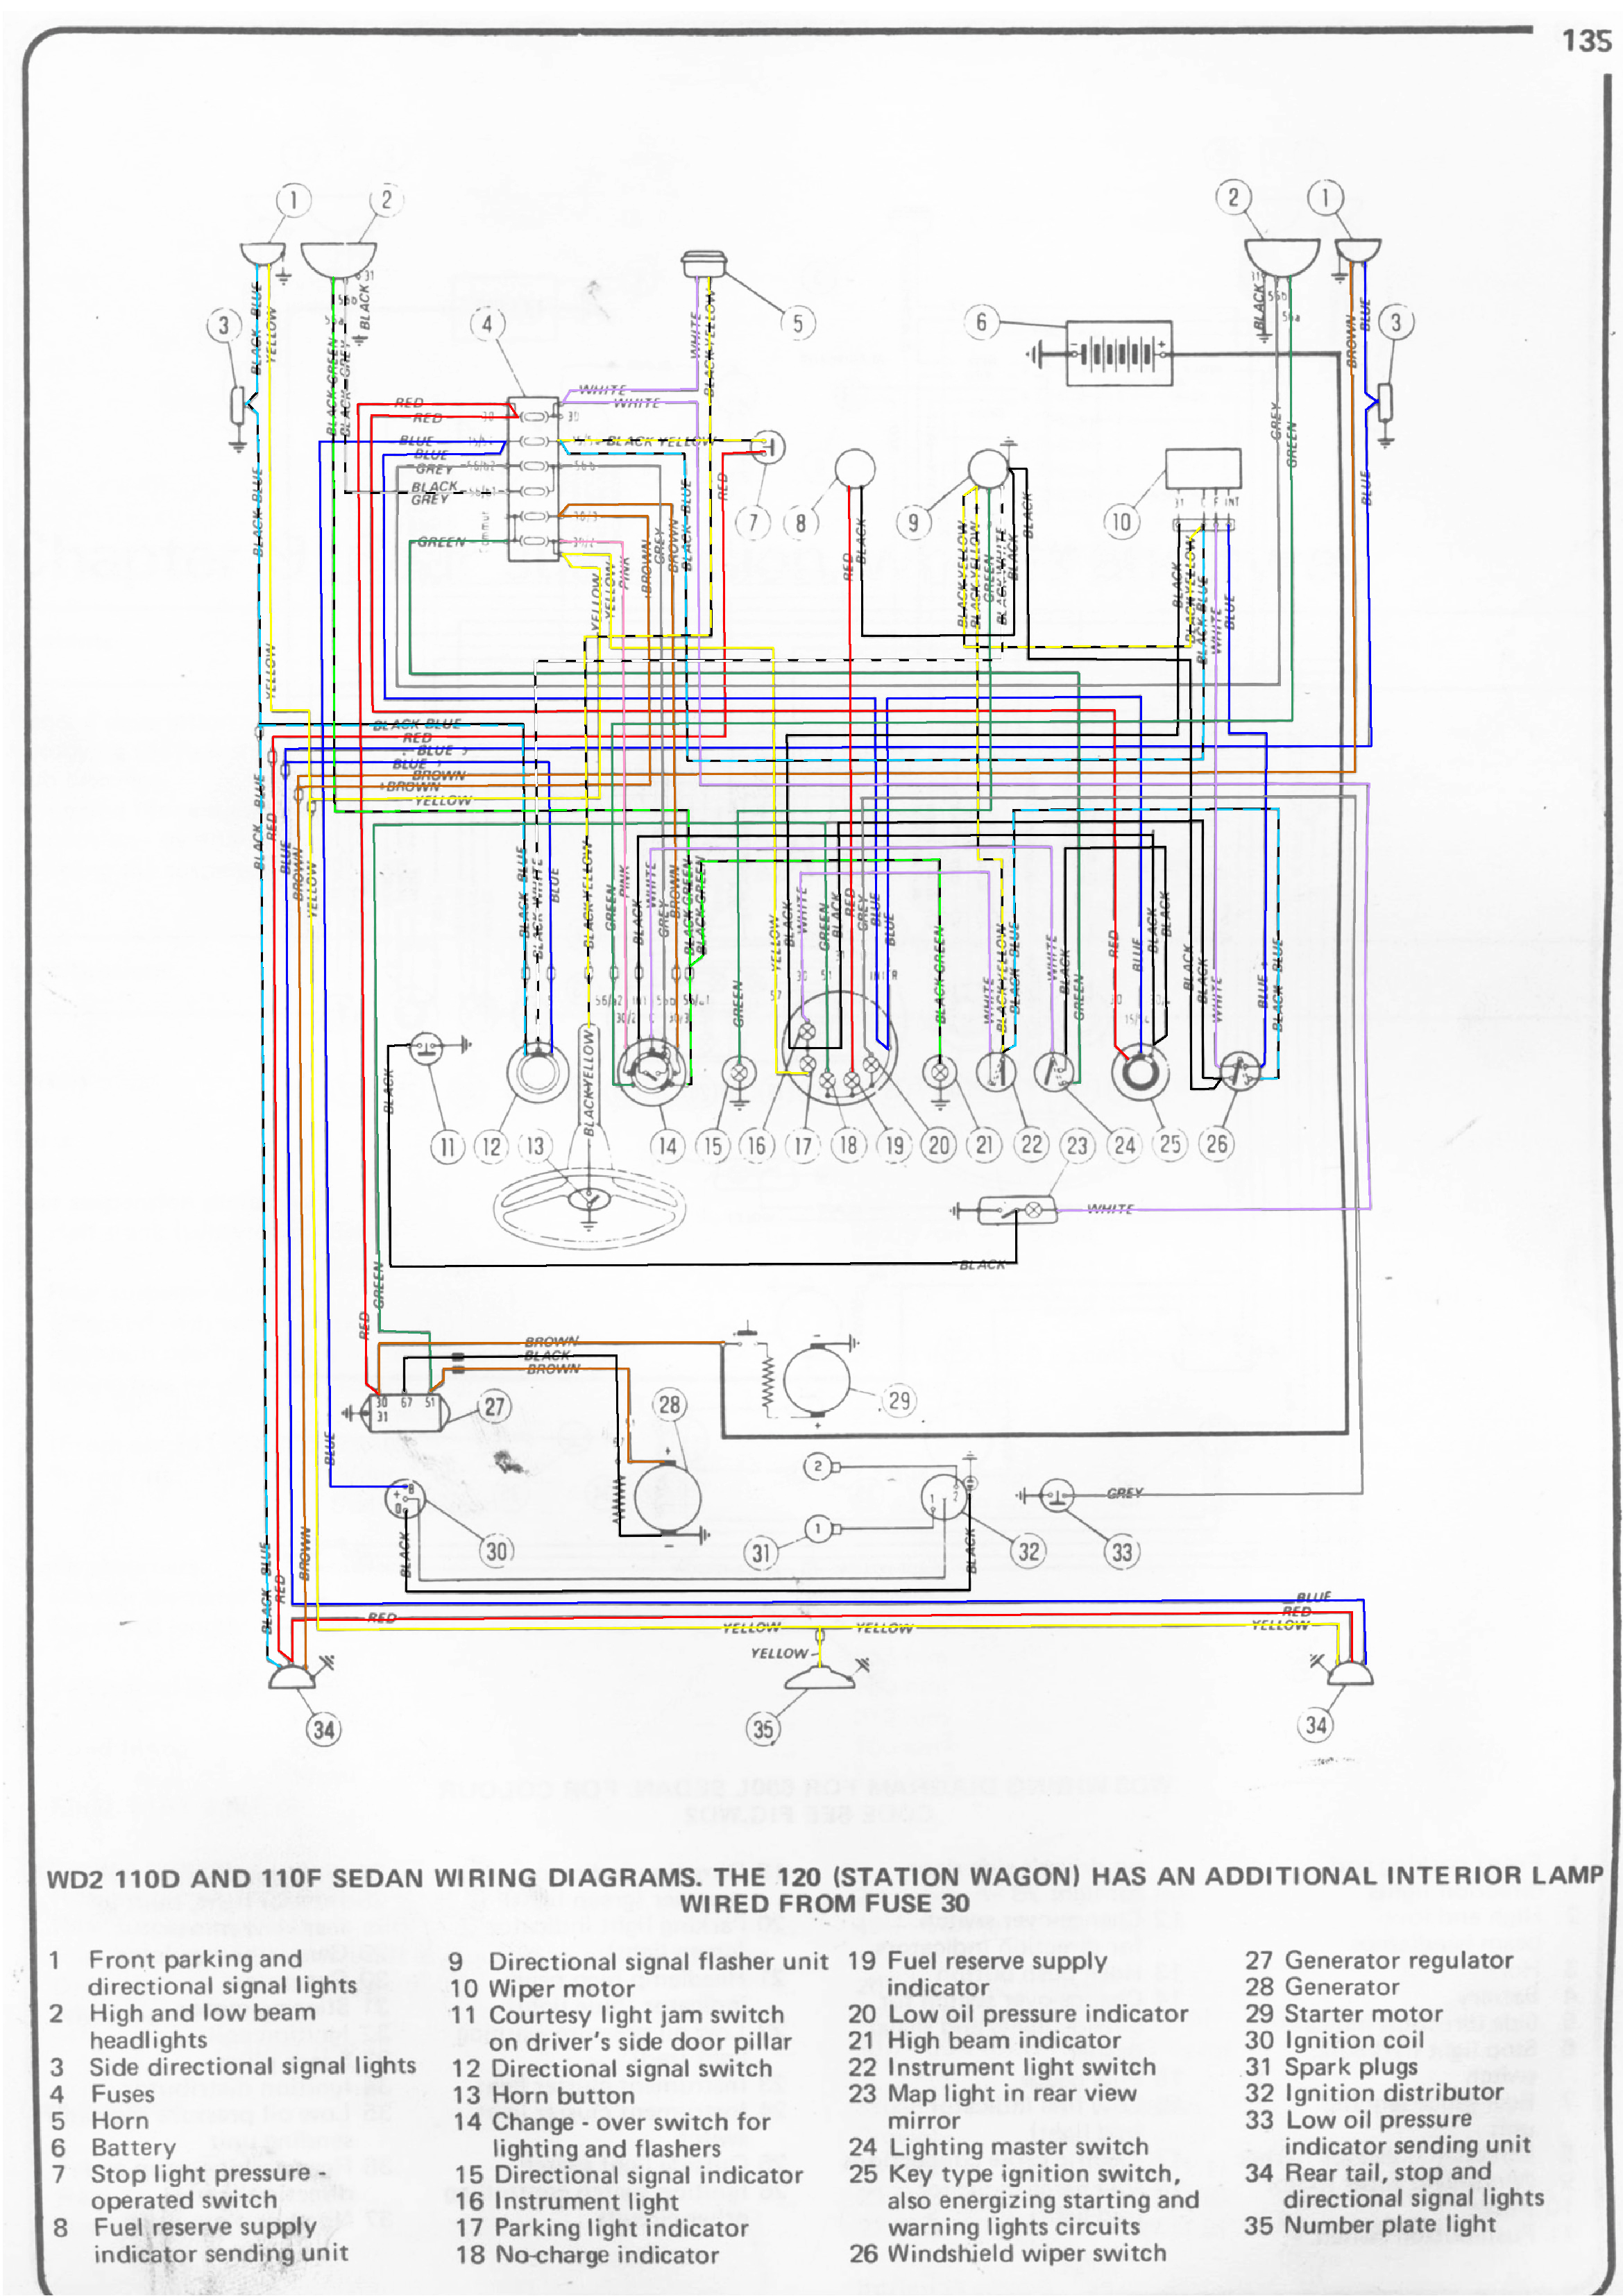 medium resolution of fiat 500 wiring diagram wiring diagram schema mix fiat 500 wiring diagram fiat stereo